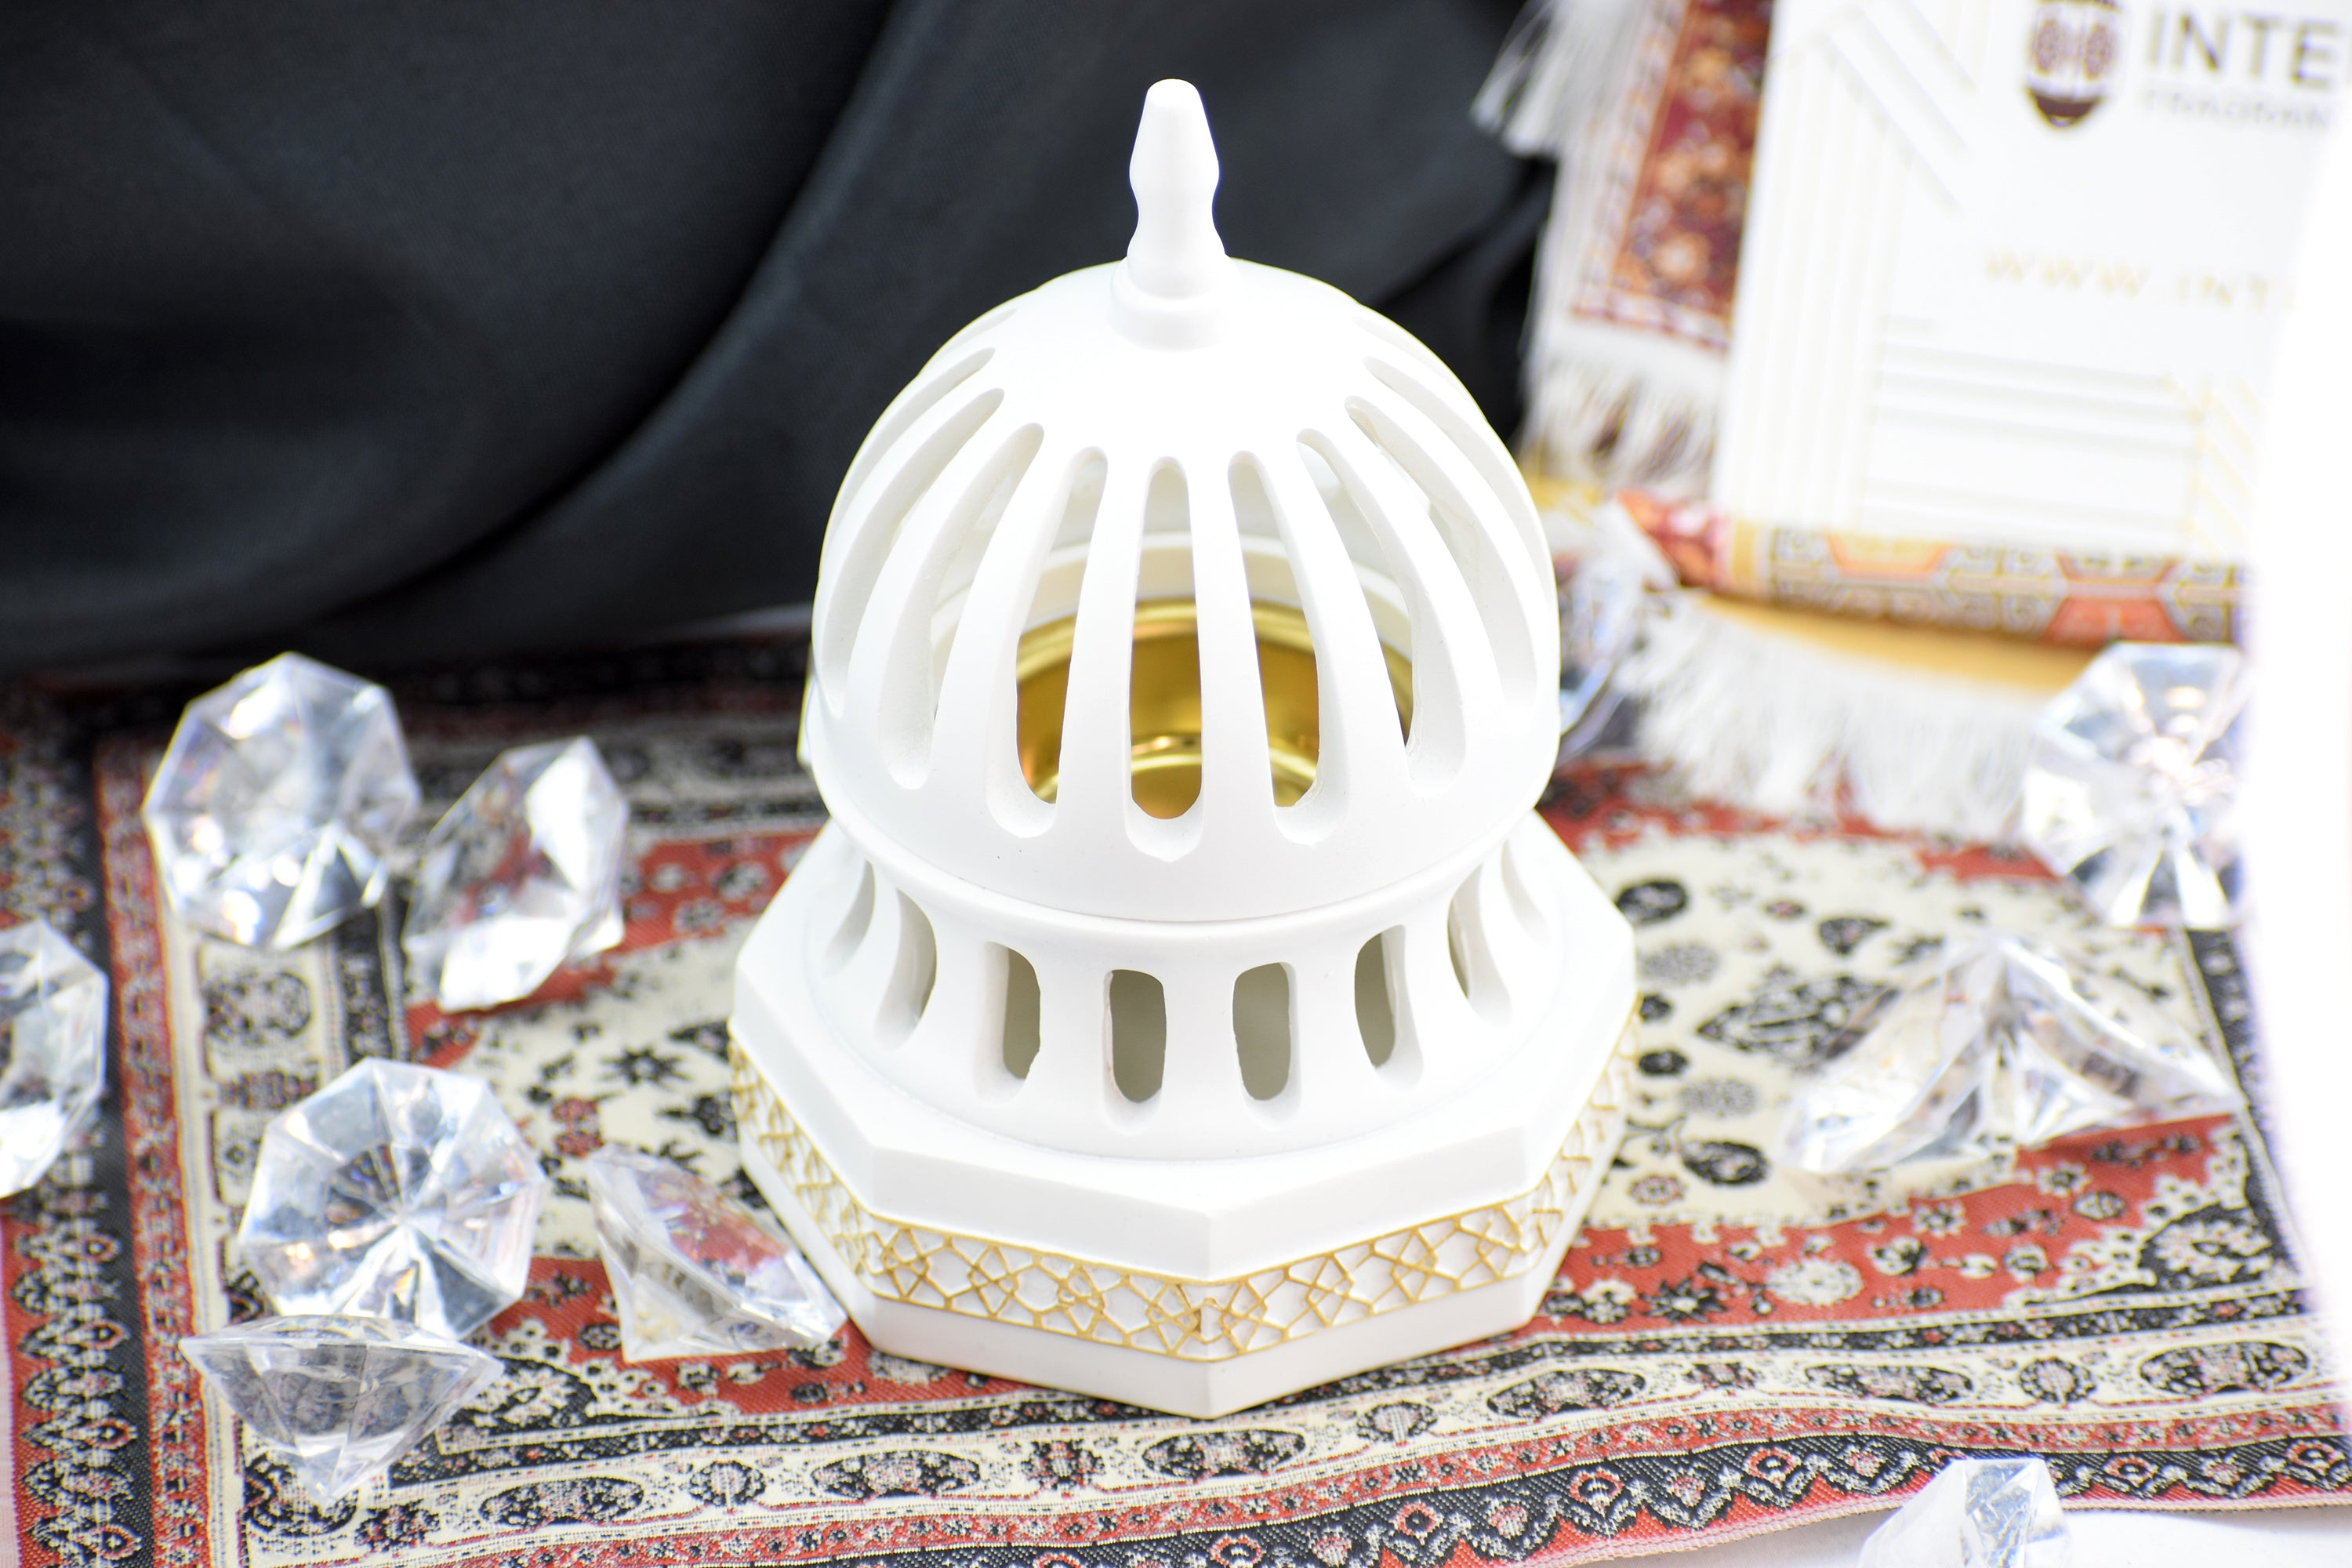 Classic Traditional Dome Style Closed Incense Bakhoor Burner - White - Intense oud